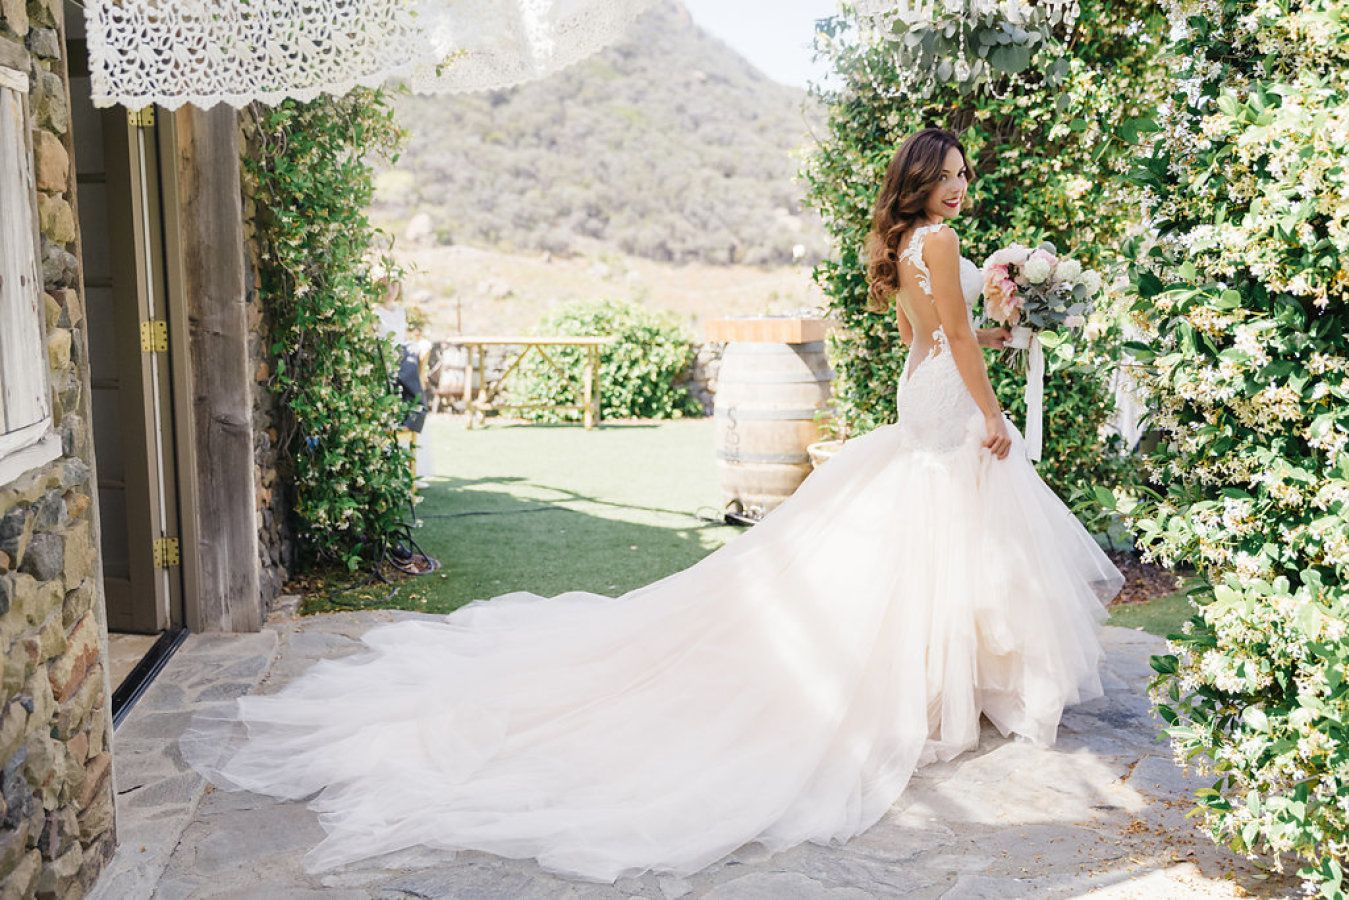 Stunning chiffon train: http://www.stylemepretty.com/2015/09/28/romantic-malibu-vineyard-wedding/ | Photography: Jana Williams - http://jana-williams.com/